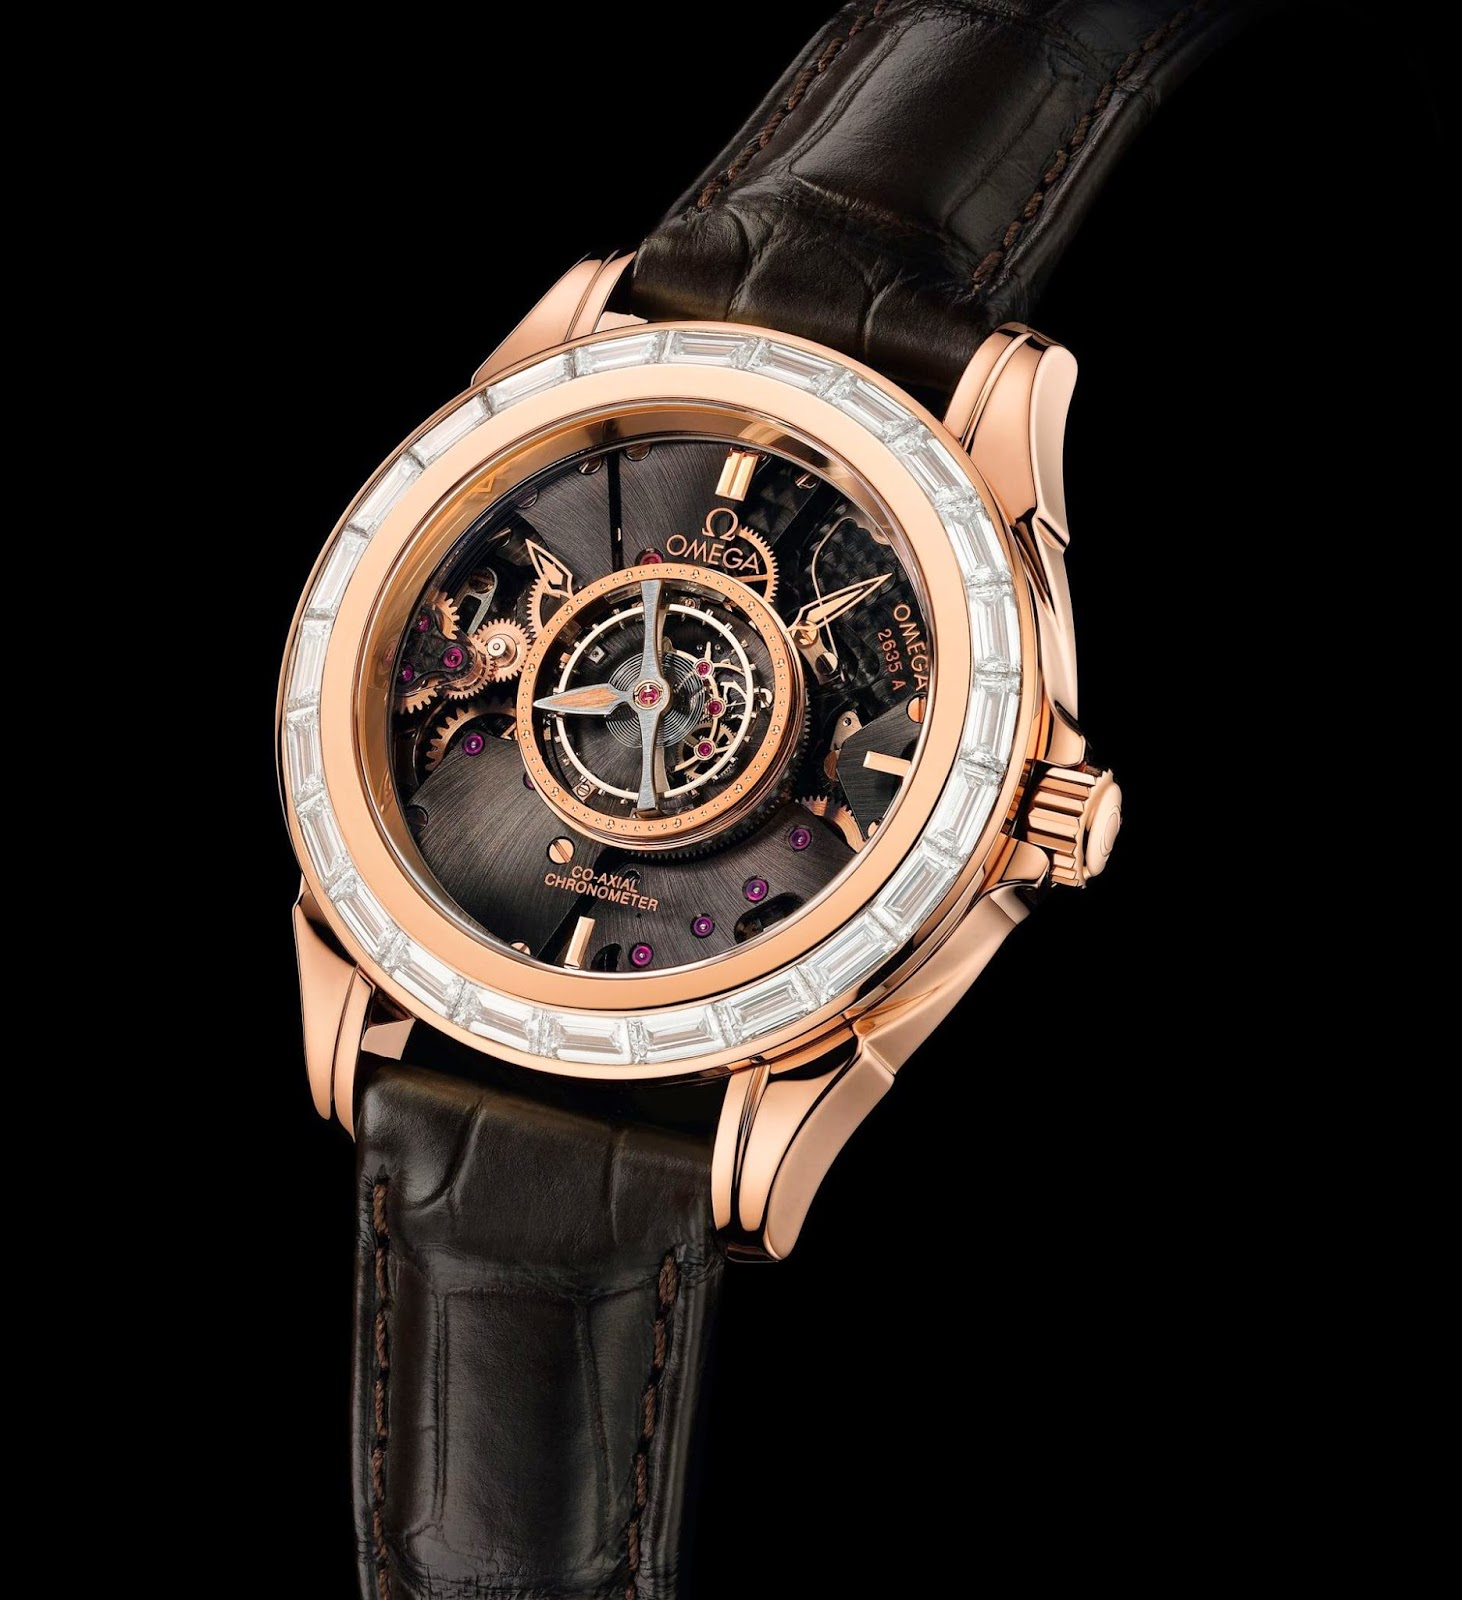 Omega De Ville Central Tourbillon replica watch